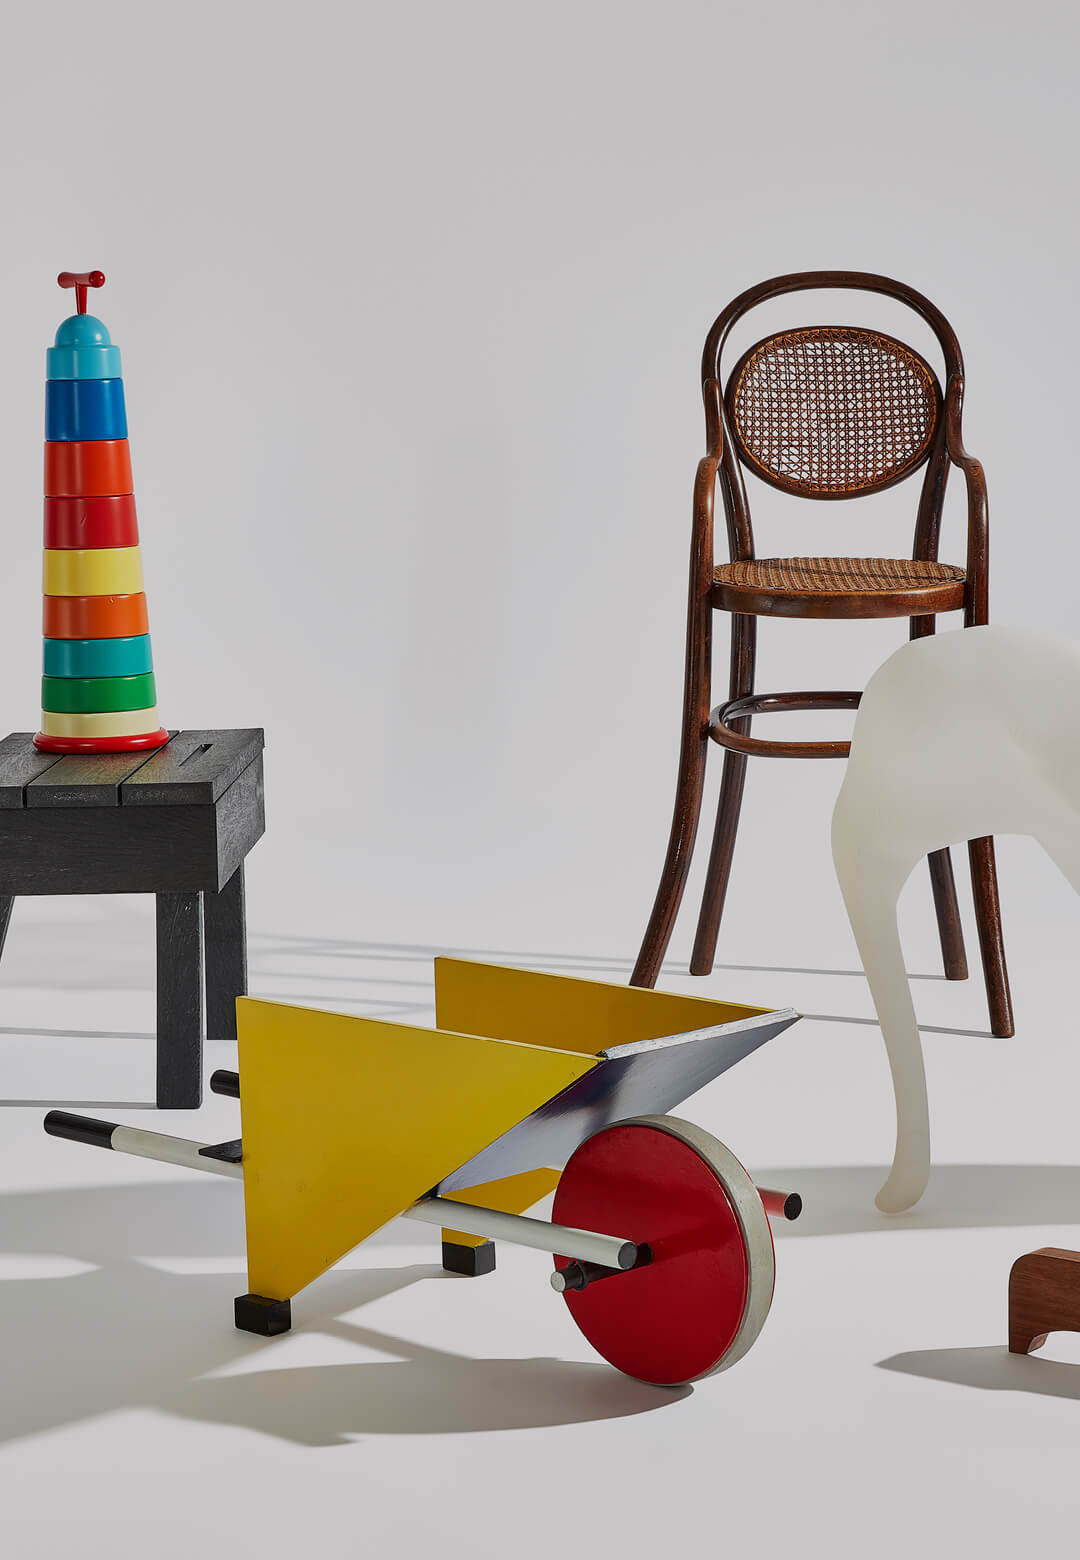 Clockwise: Michael Thonet's highchair, Richard Hutten's Low-res Elephant, Enzo Mari's puzzle 16 animali, Gerrit Rietveld's child's wheelbarrow, Ineke Hans's Office Desk and Chair and Torre di Mosto's  Magis Post-Computer | STIRworld